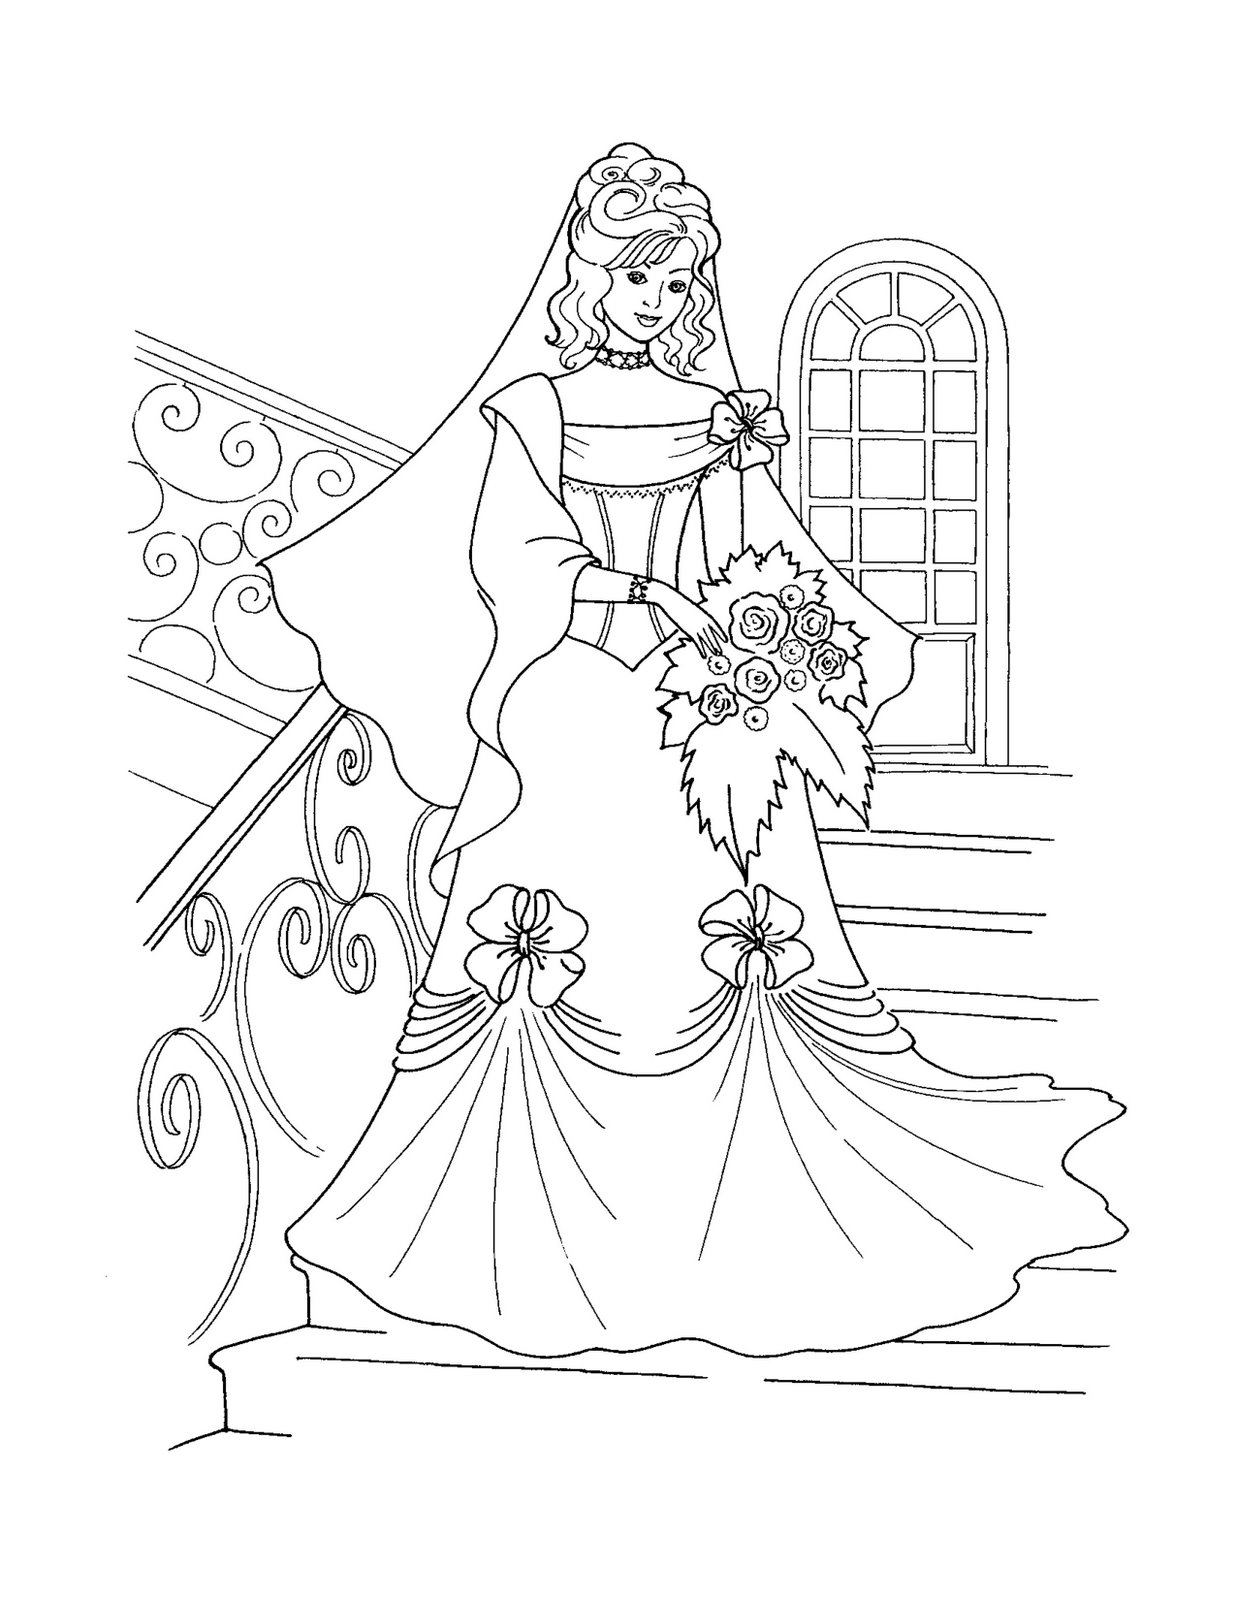 Printable Disney Princess Coloring Pages For Kids